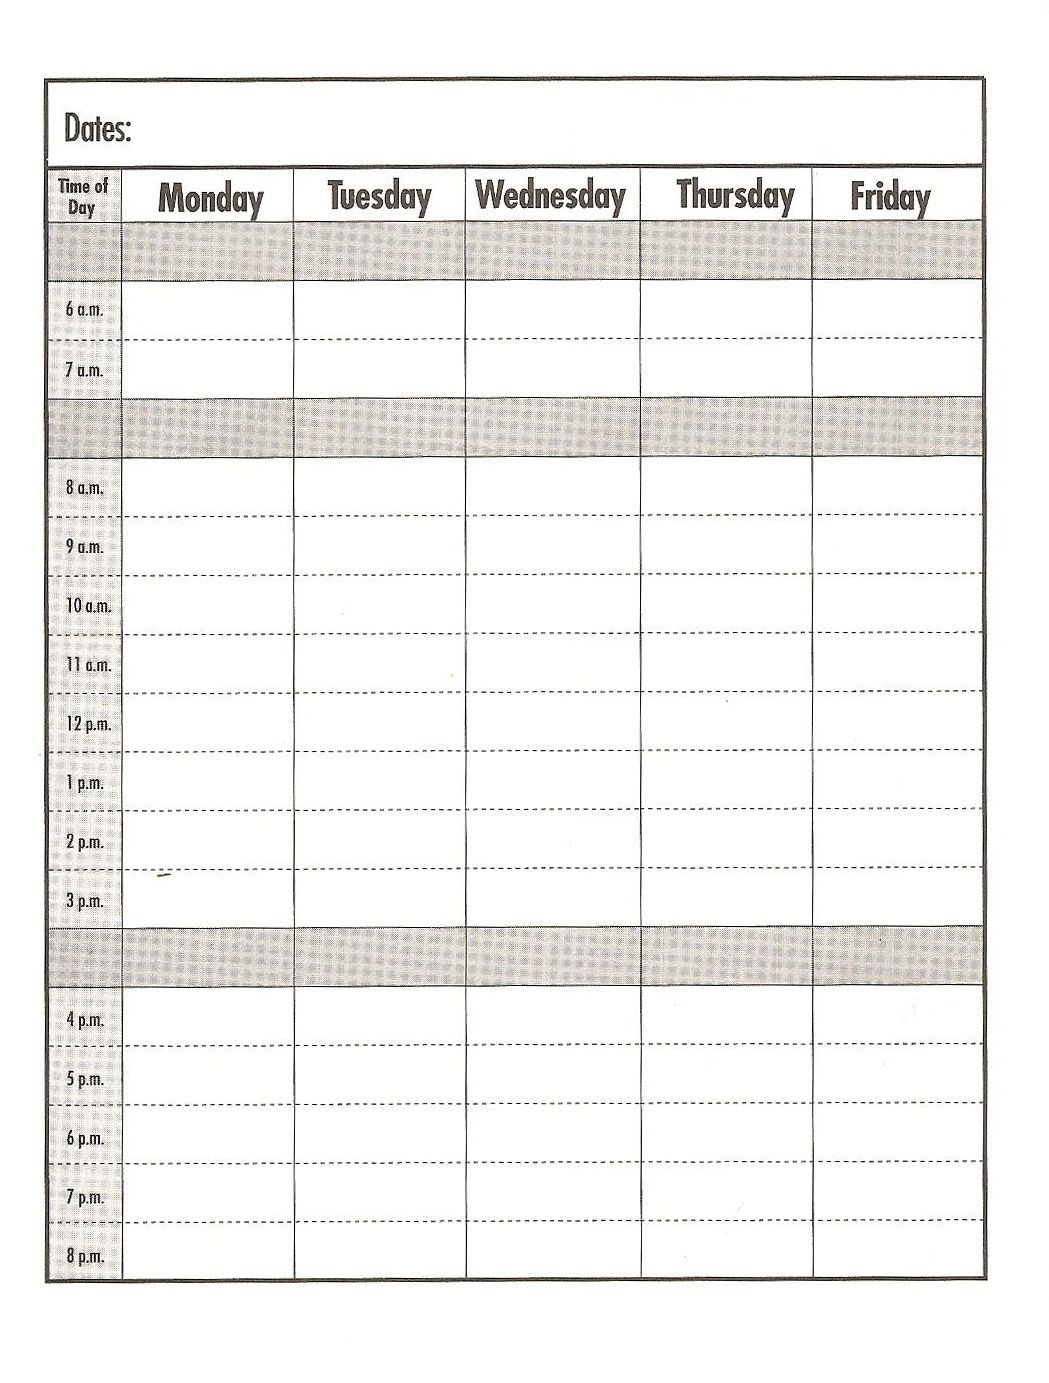 Free Calendar Print Out Pages Daily With Time Slots On   Ten Free Printable Calendar 2020-2021